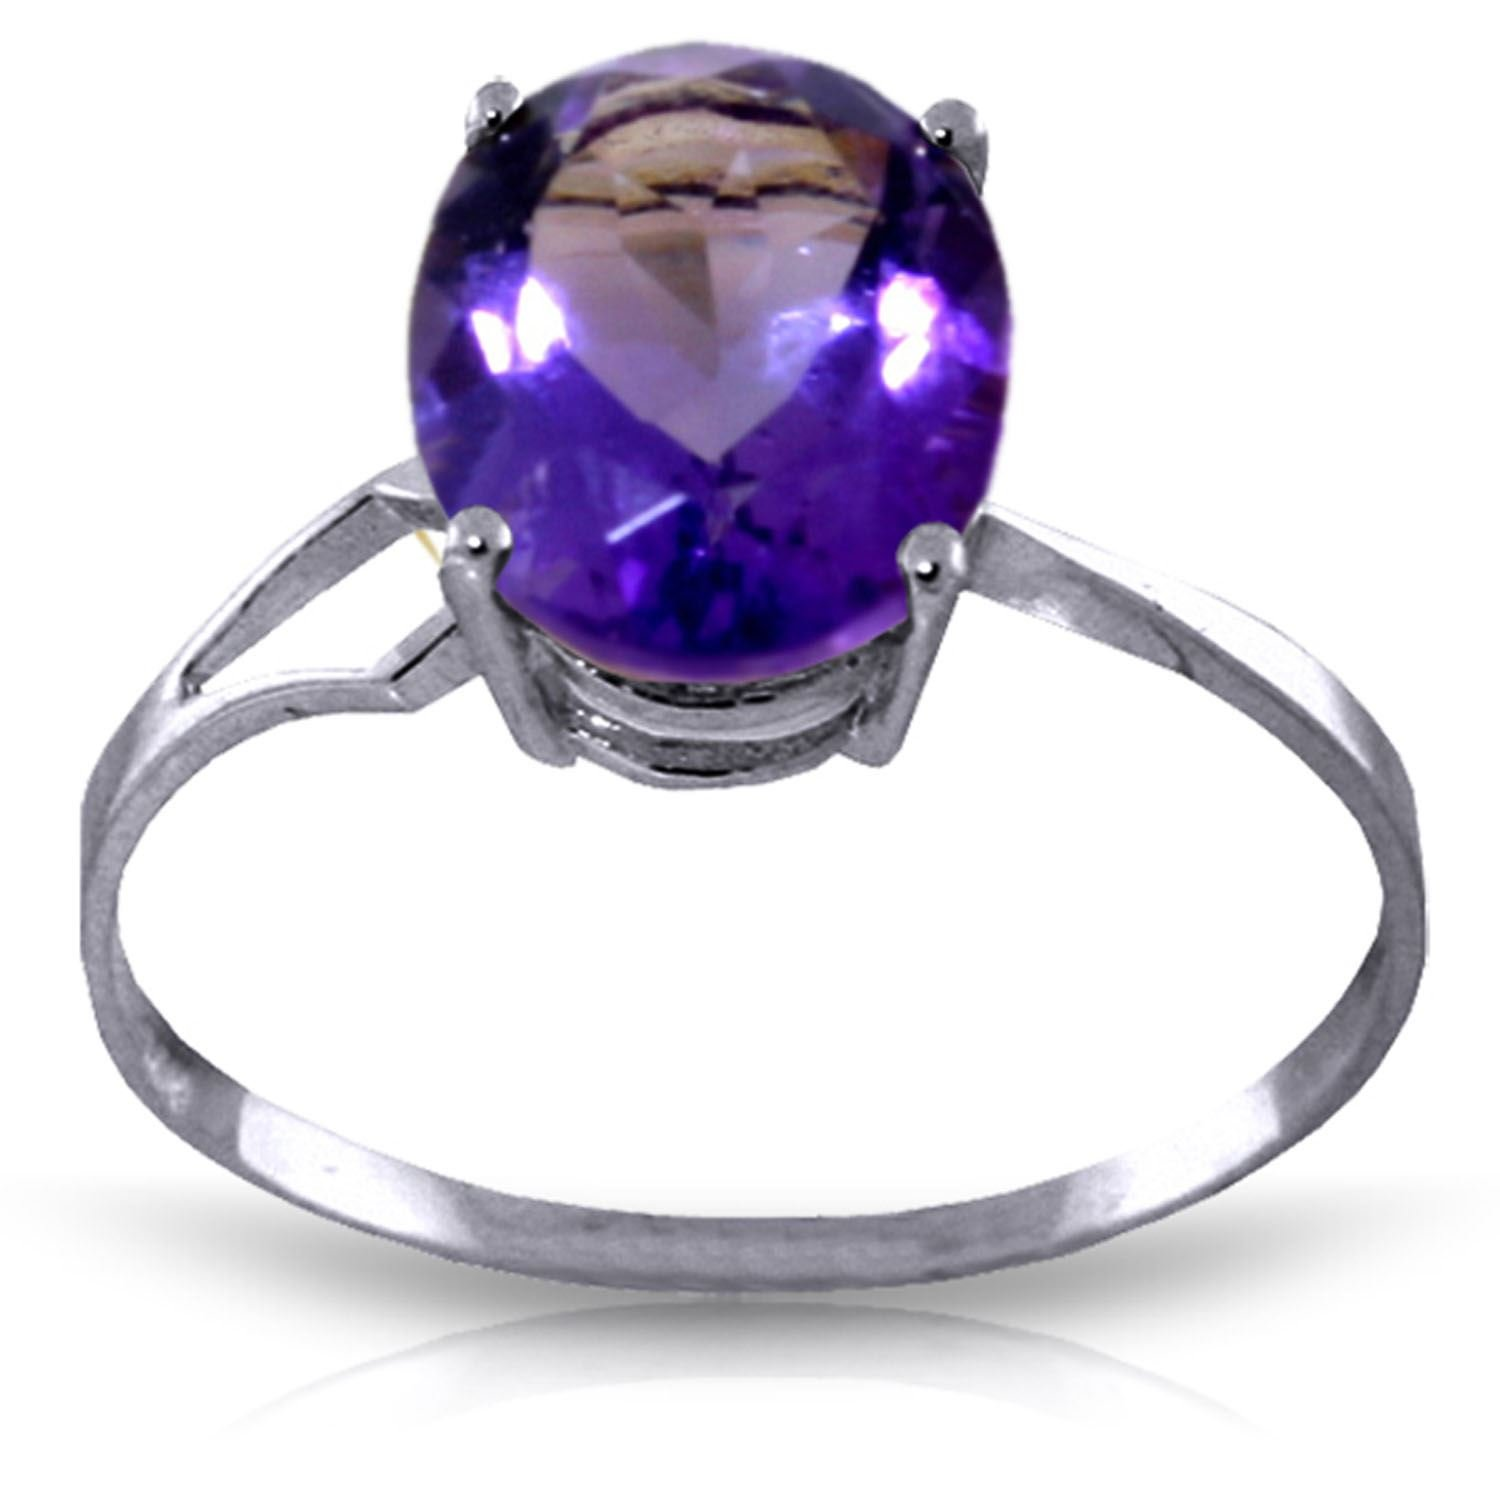 ALARRI 2.2 Carat 14K Solid White Gold Power Of Forgiveness Amethyst Ring With Ring Size 7